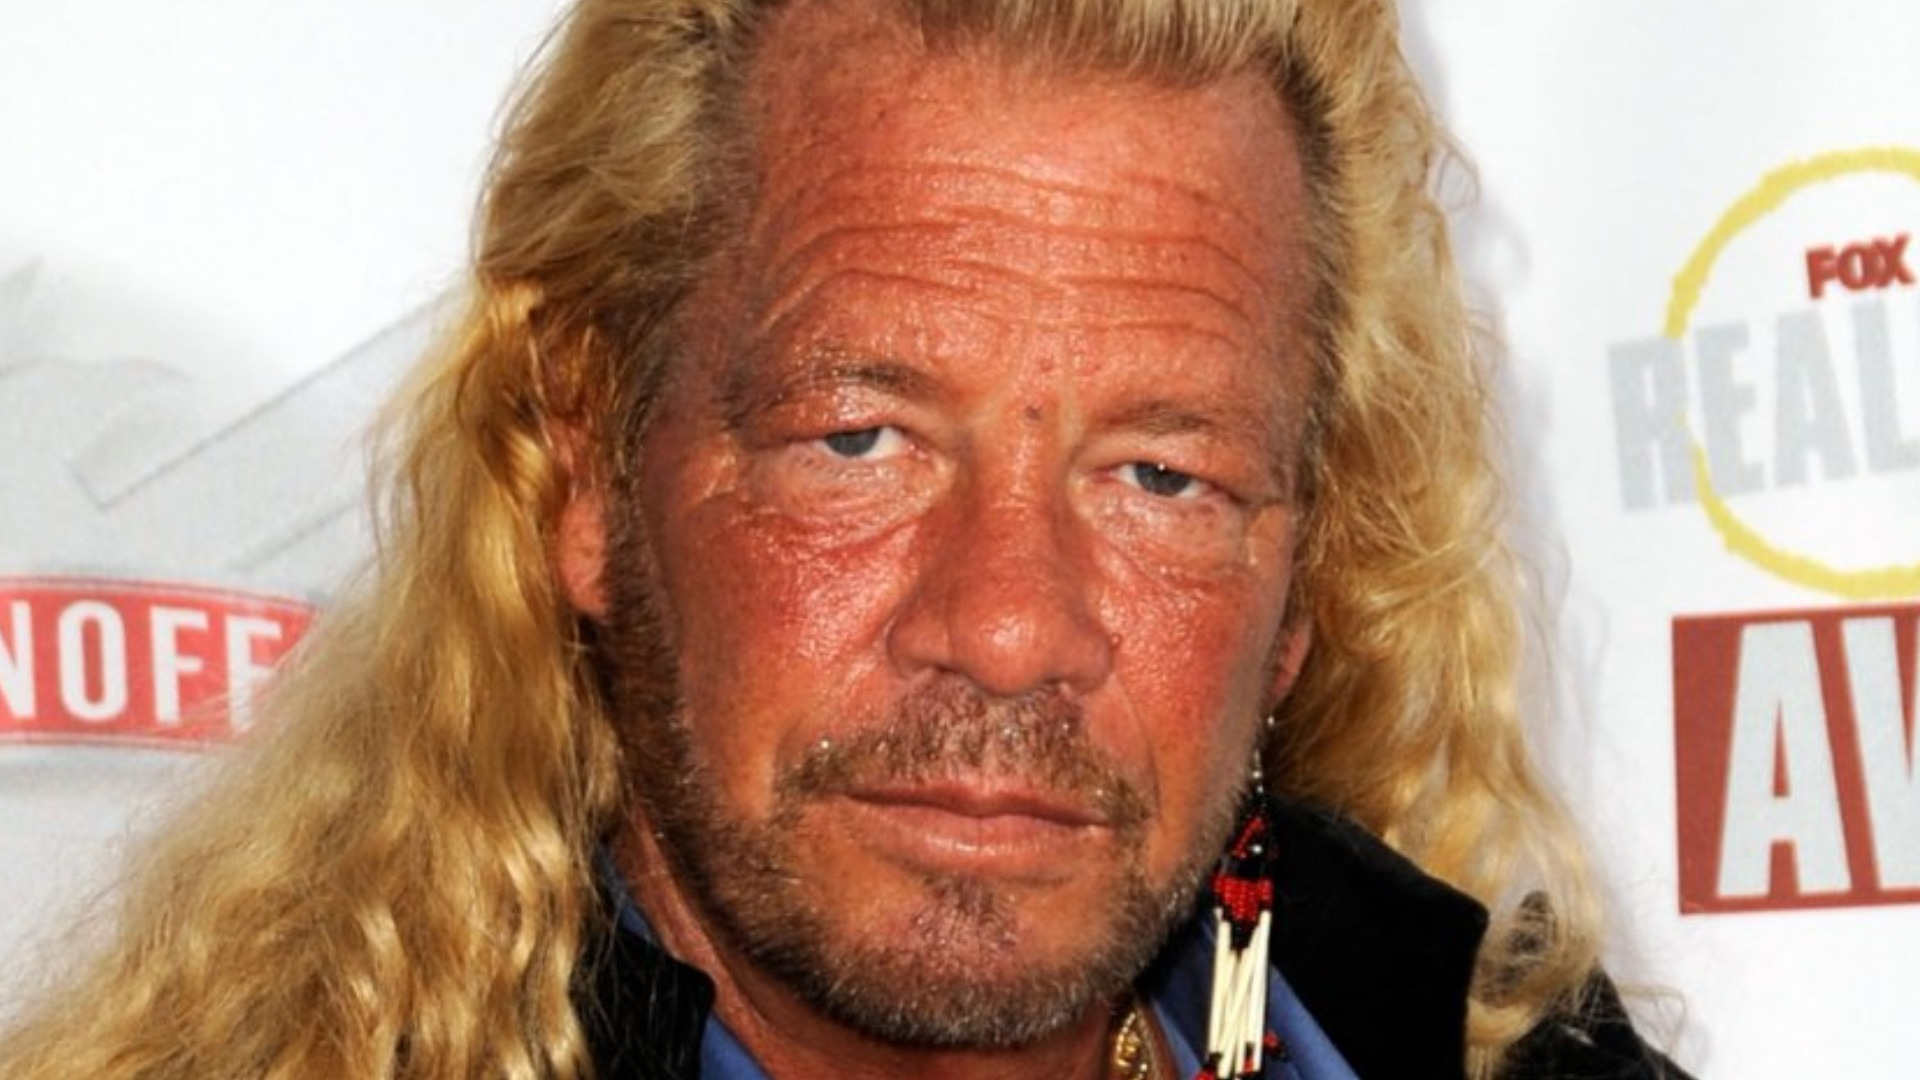 Tragic Details About Dog The Bounty Hunter